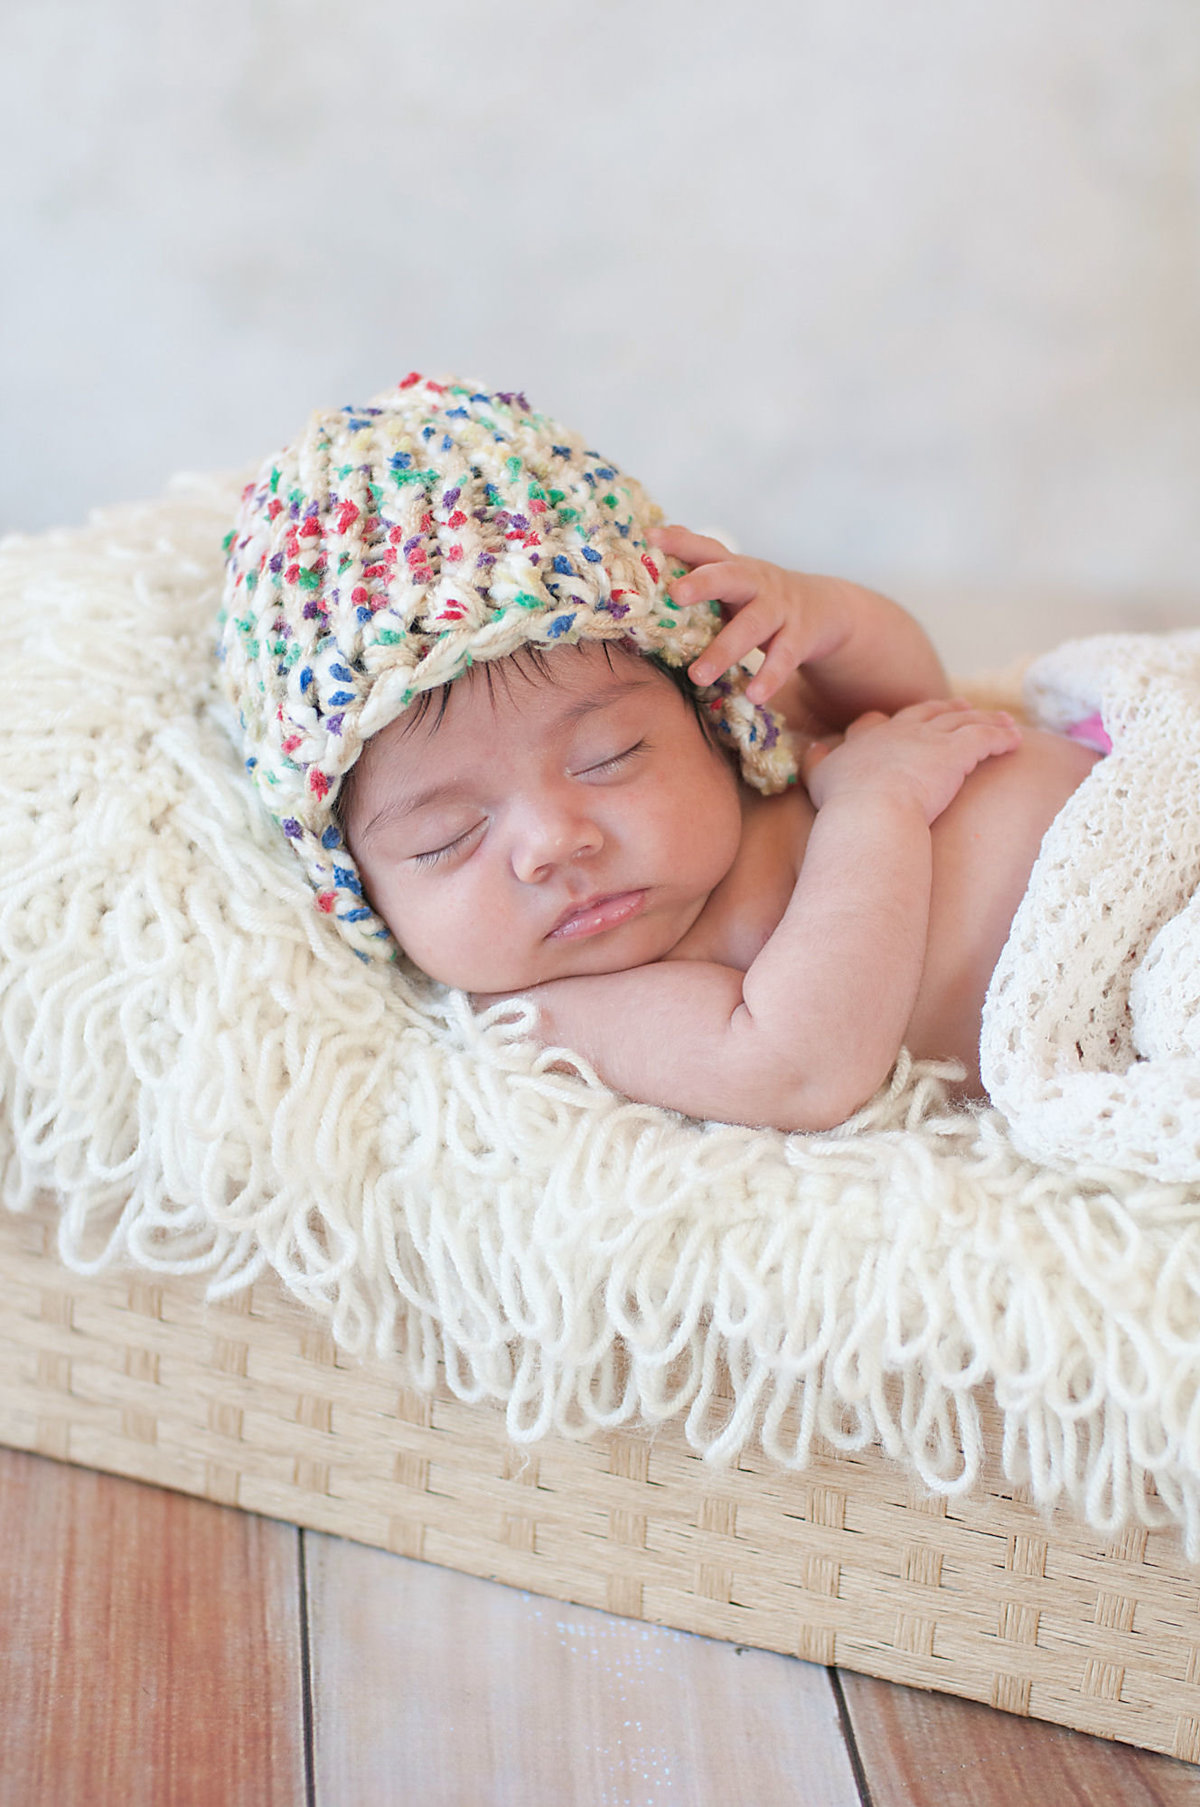 Cute newborn baby photoshoot | One Shot Beyond Photography